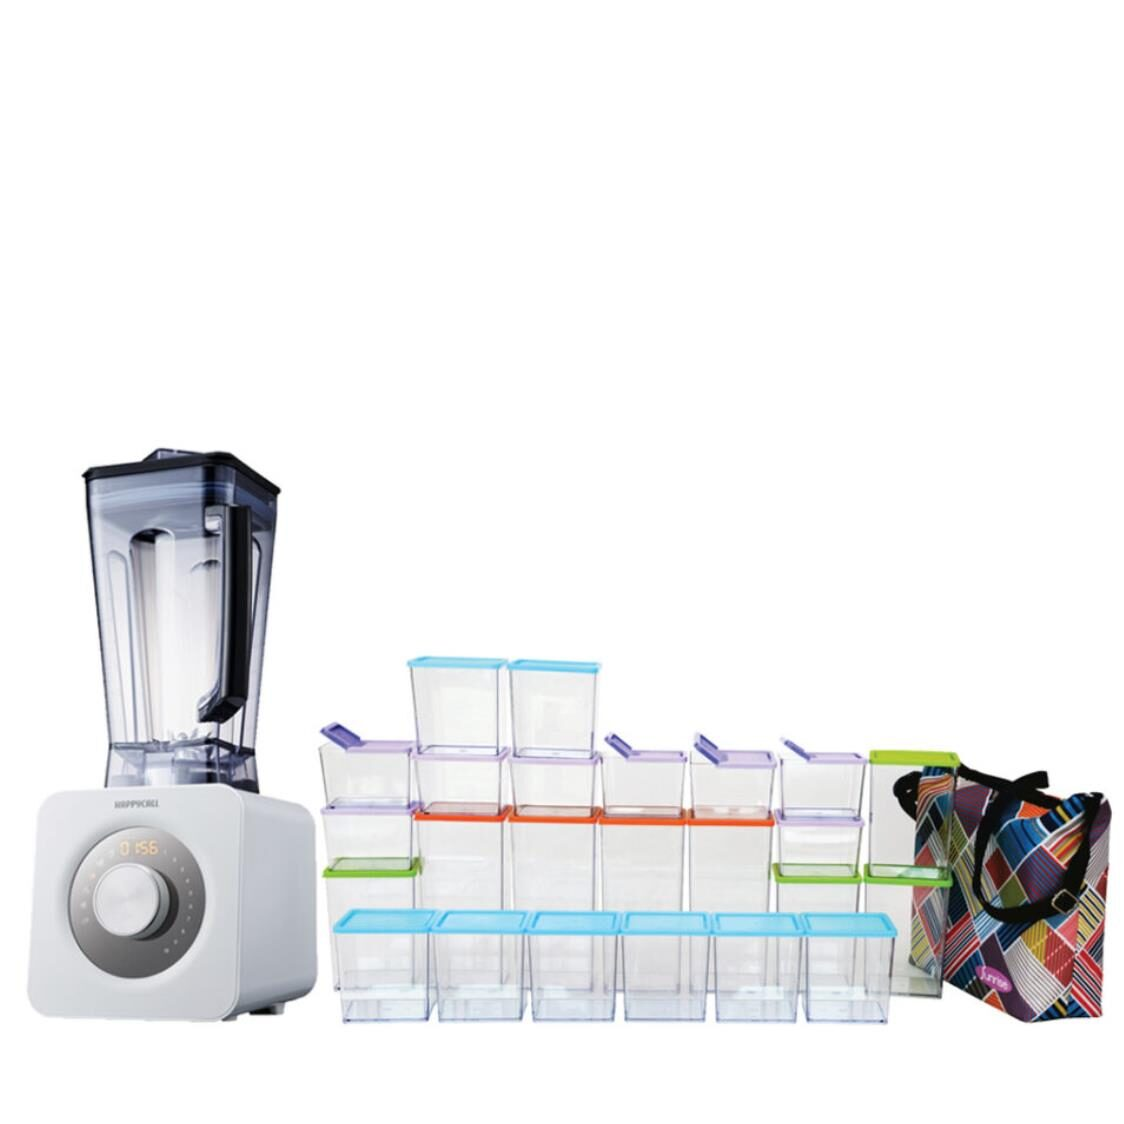 Happycall Axlerim Z Ultimate High Speed Power Blender White Made In Korea  Sunrise 49-pc Set Incl Freezer Bag Made In Korea Worth 299